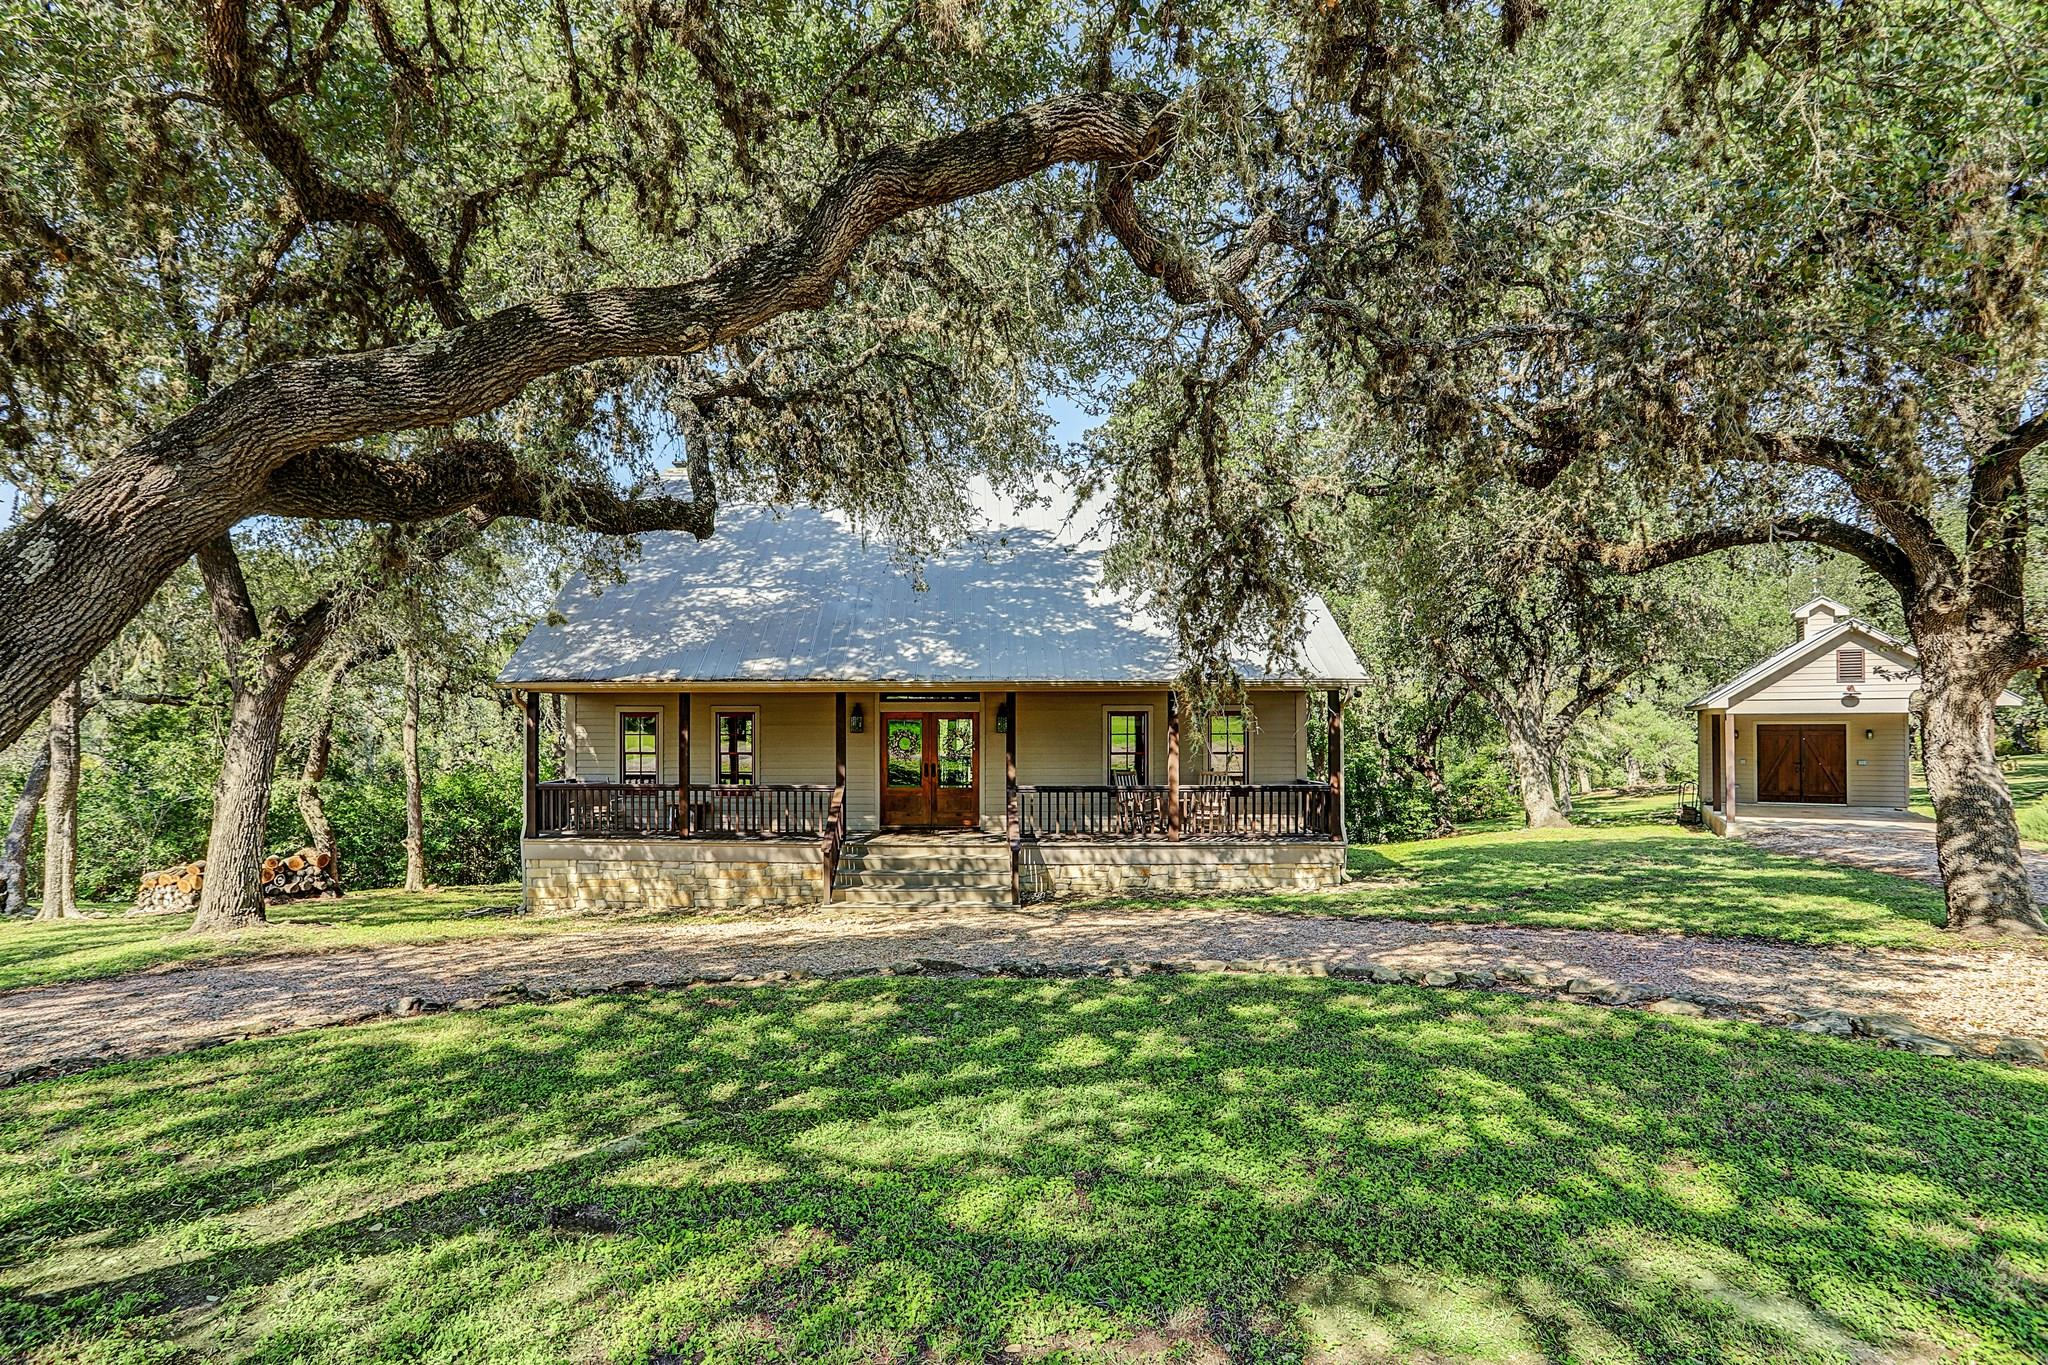 171 Cummins Creek Way Property Photo - Round Top, TX real estate listing